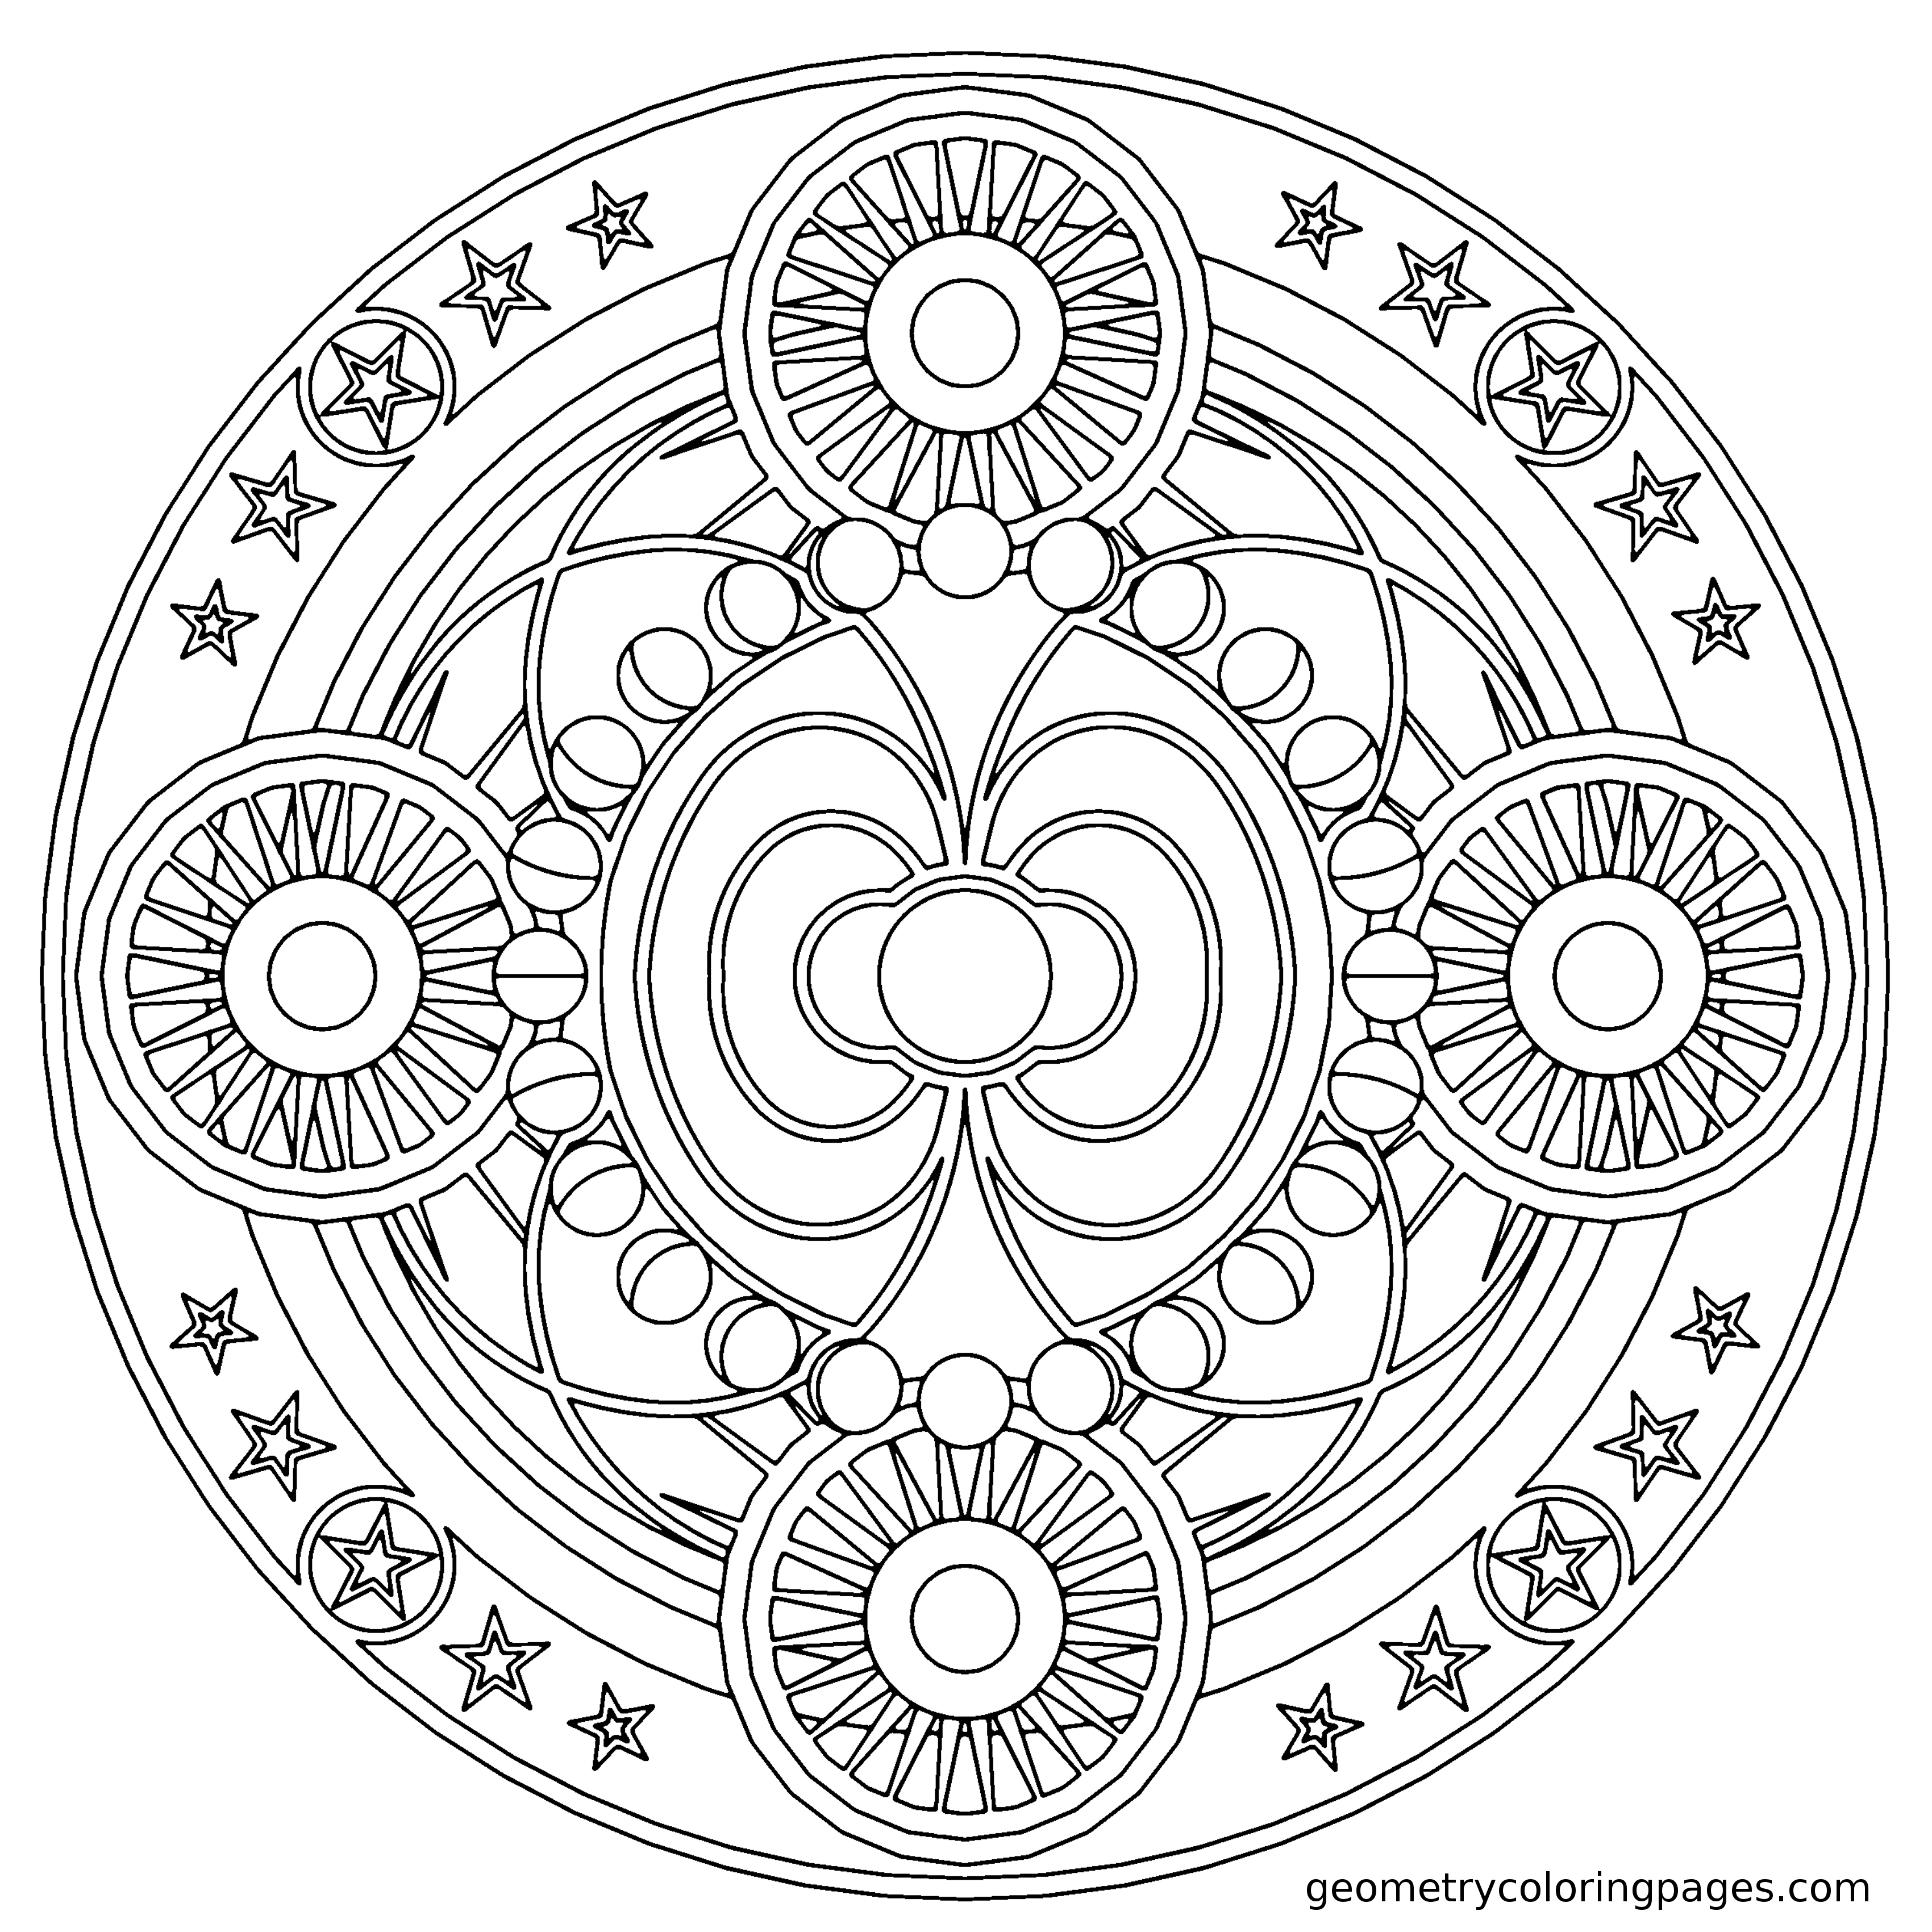 3400x3400 Awesome Geometric Coloring Pages Fascia Geometry Coloring Pages